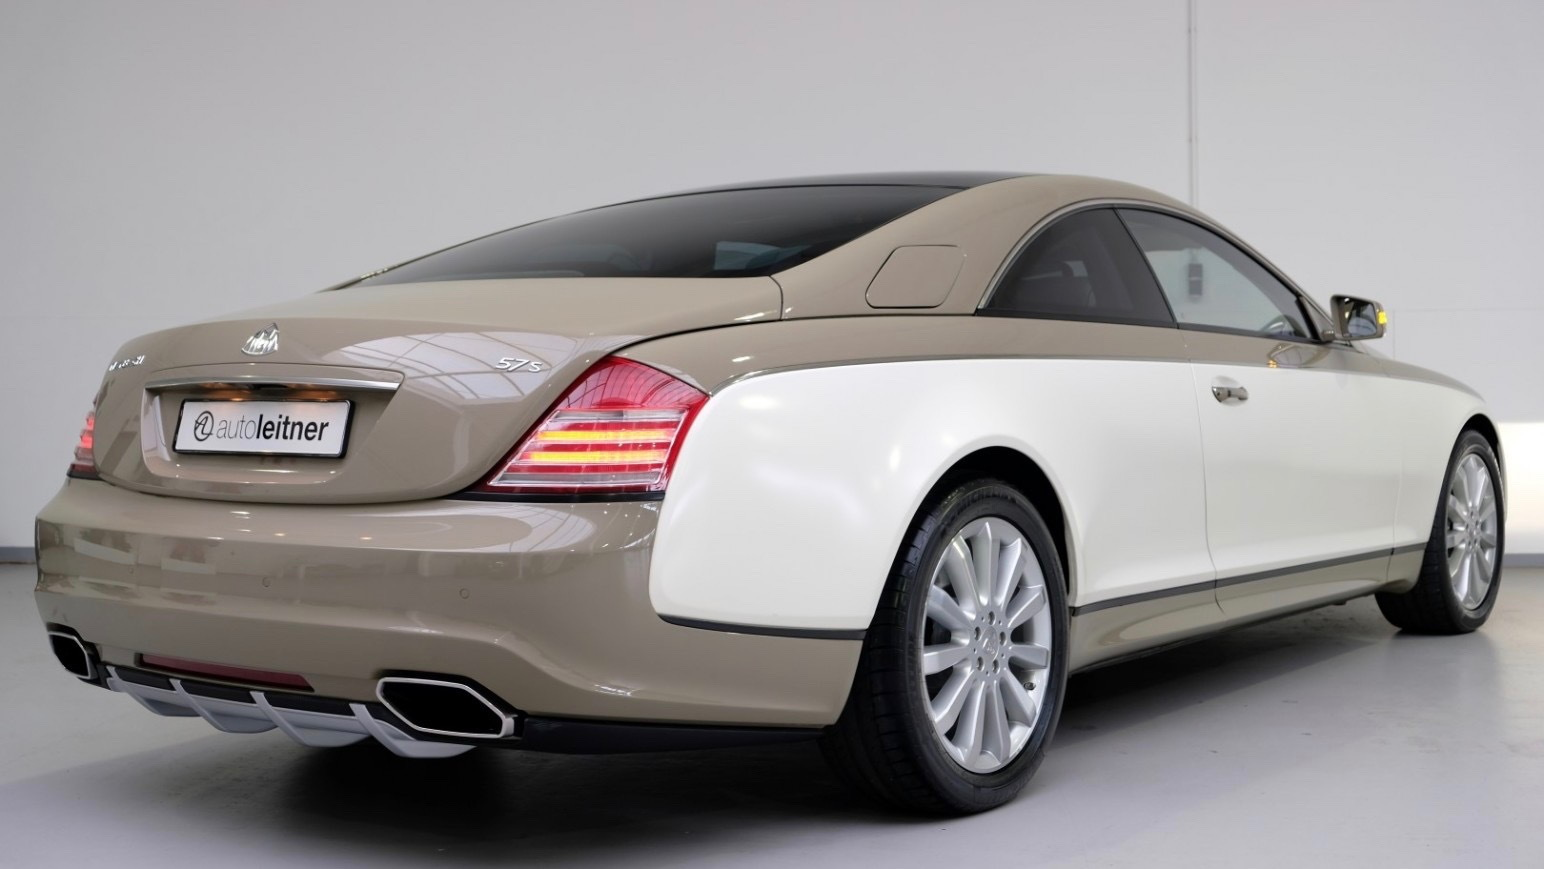 Maybach 57S Coupe built for Muammar Gaddafi (Photo by Autoleitner)